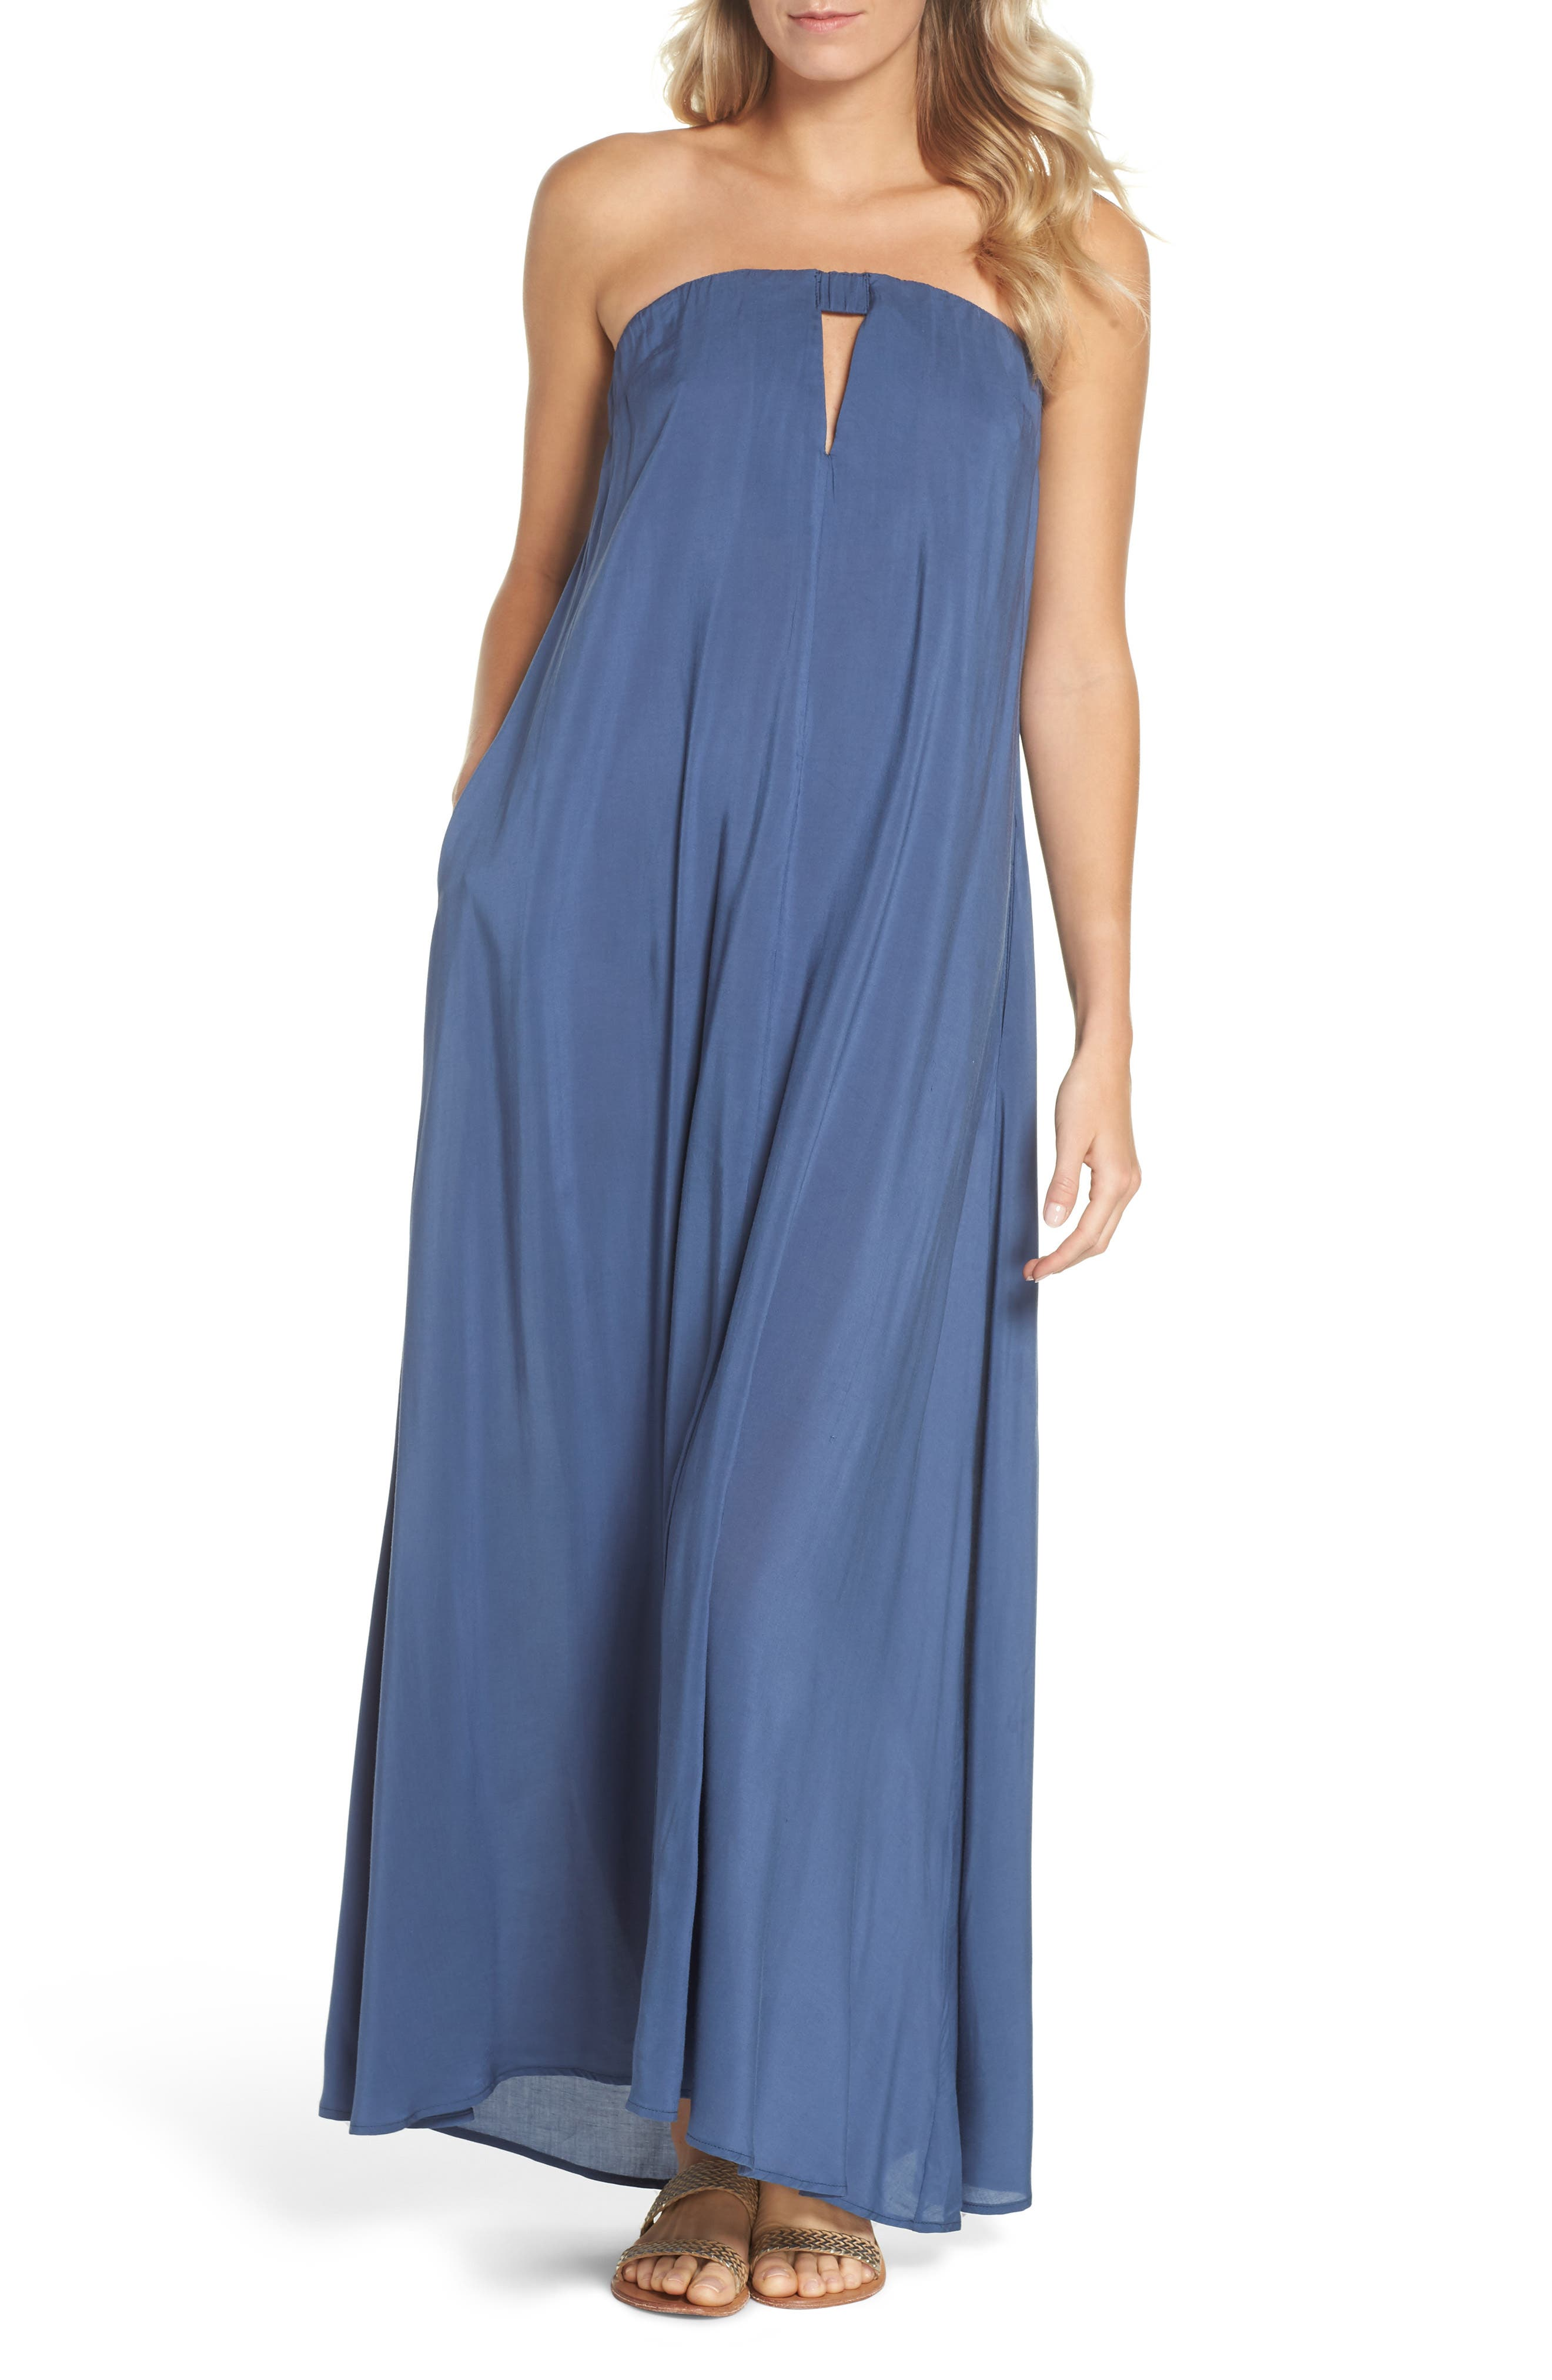 Strapless Keyhole Cover-Up Maxi Dress,                             Main thumbnail 1, color,                             462